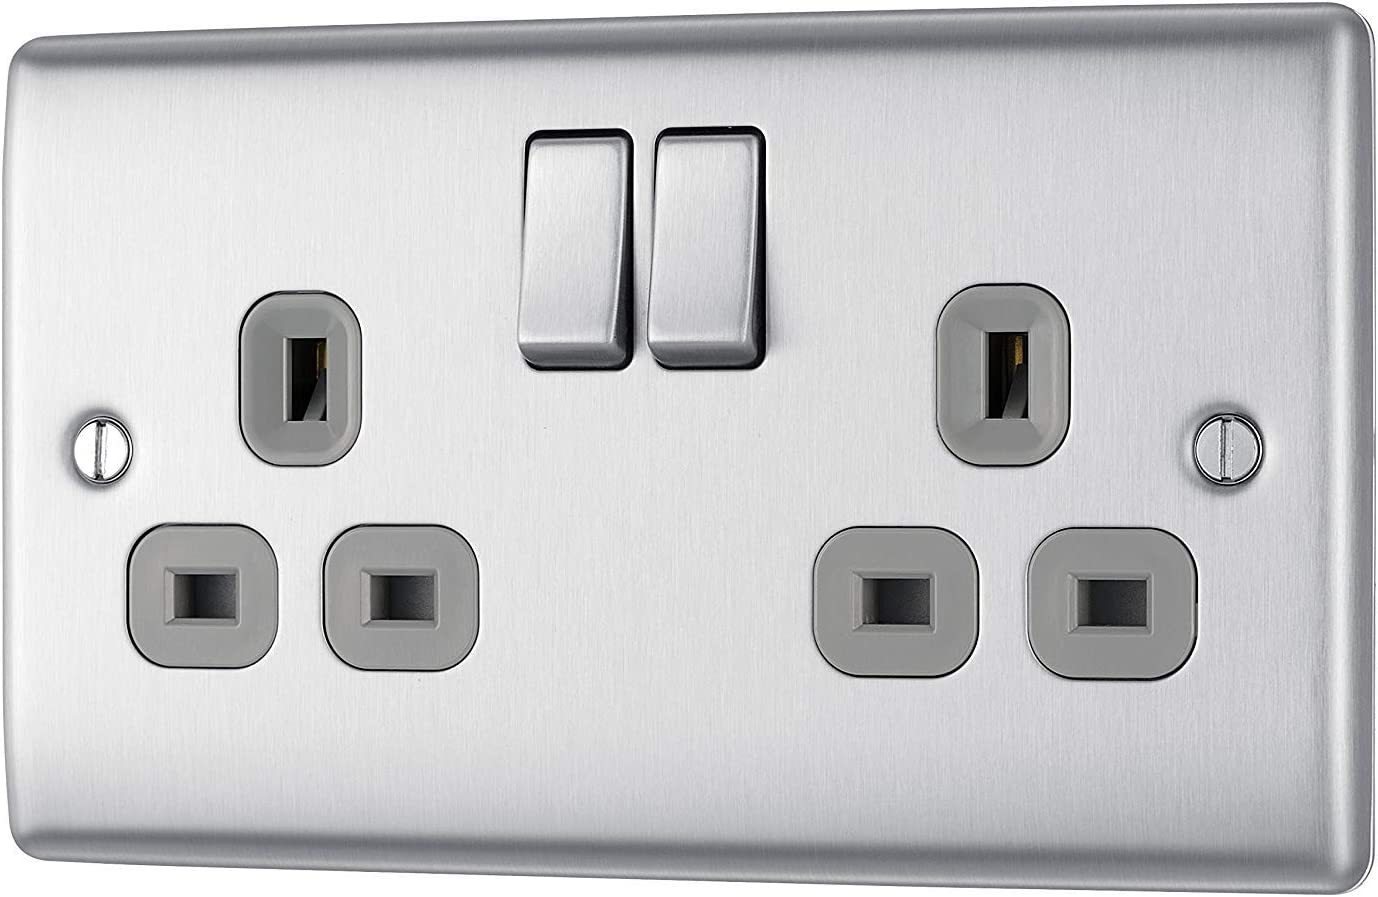 13 A BG Electrical Double Switched Fast Charging Power Socket with Two USB Charging Ports Brushed Steel with White Inserts